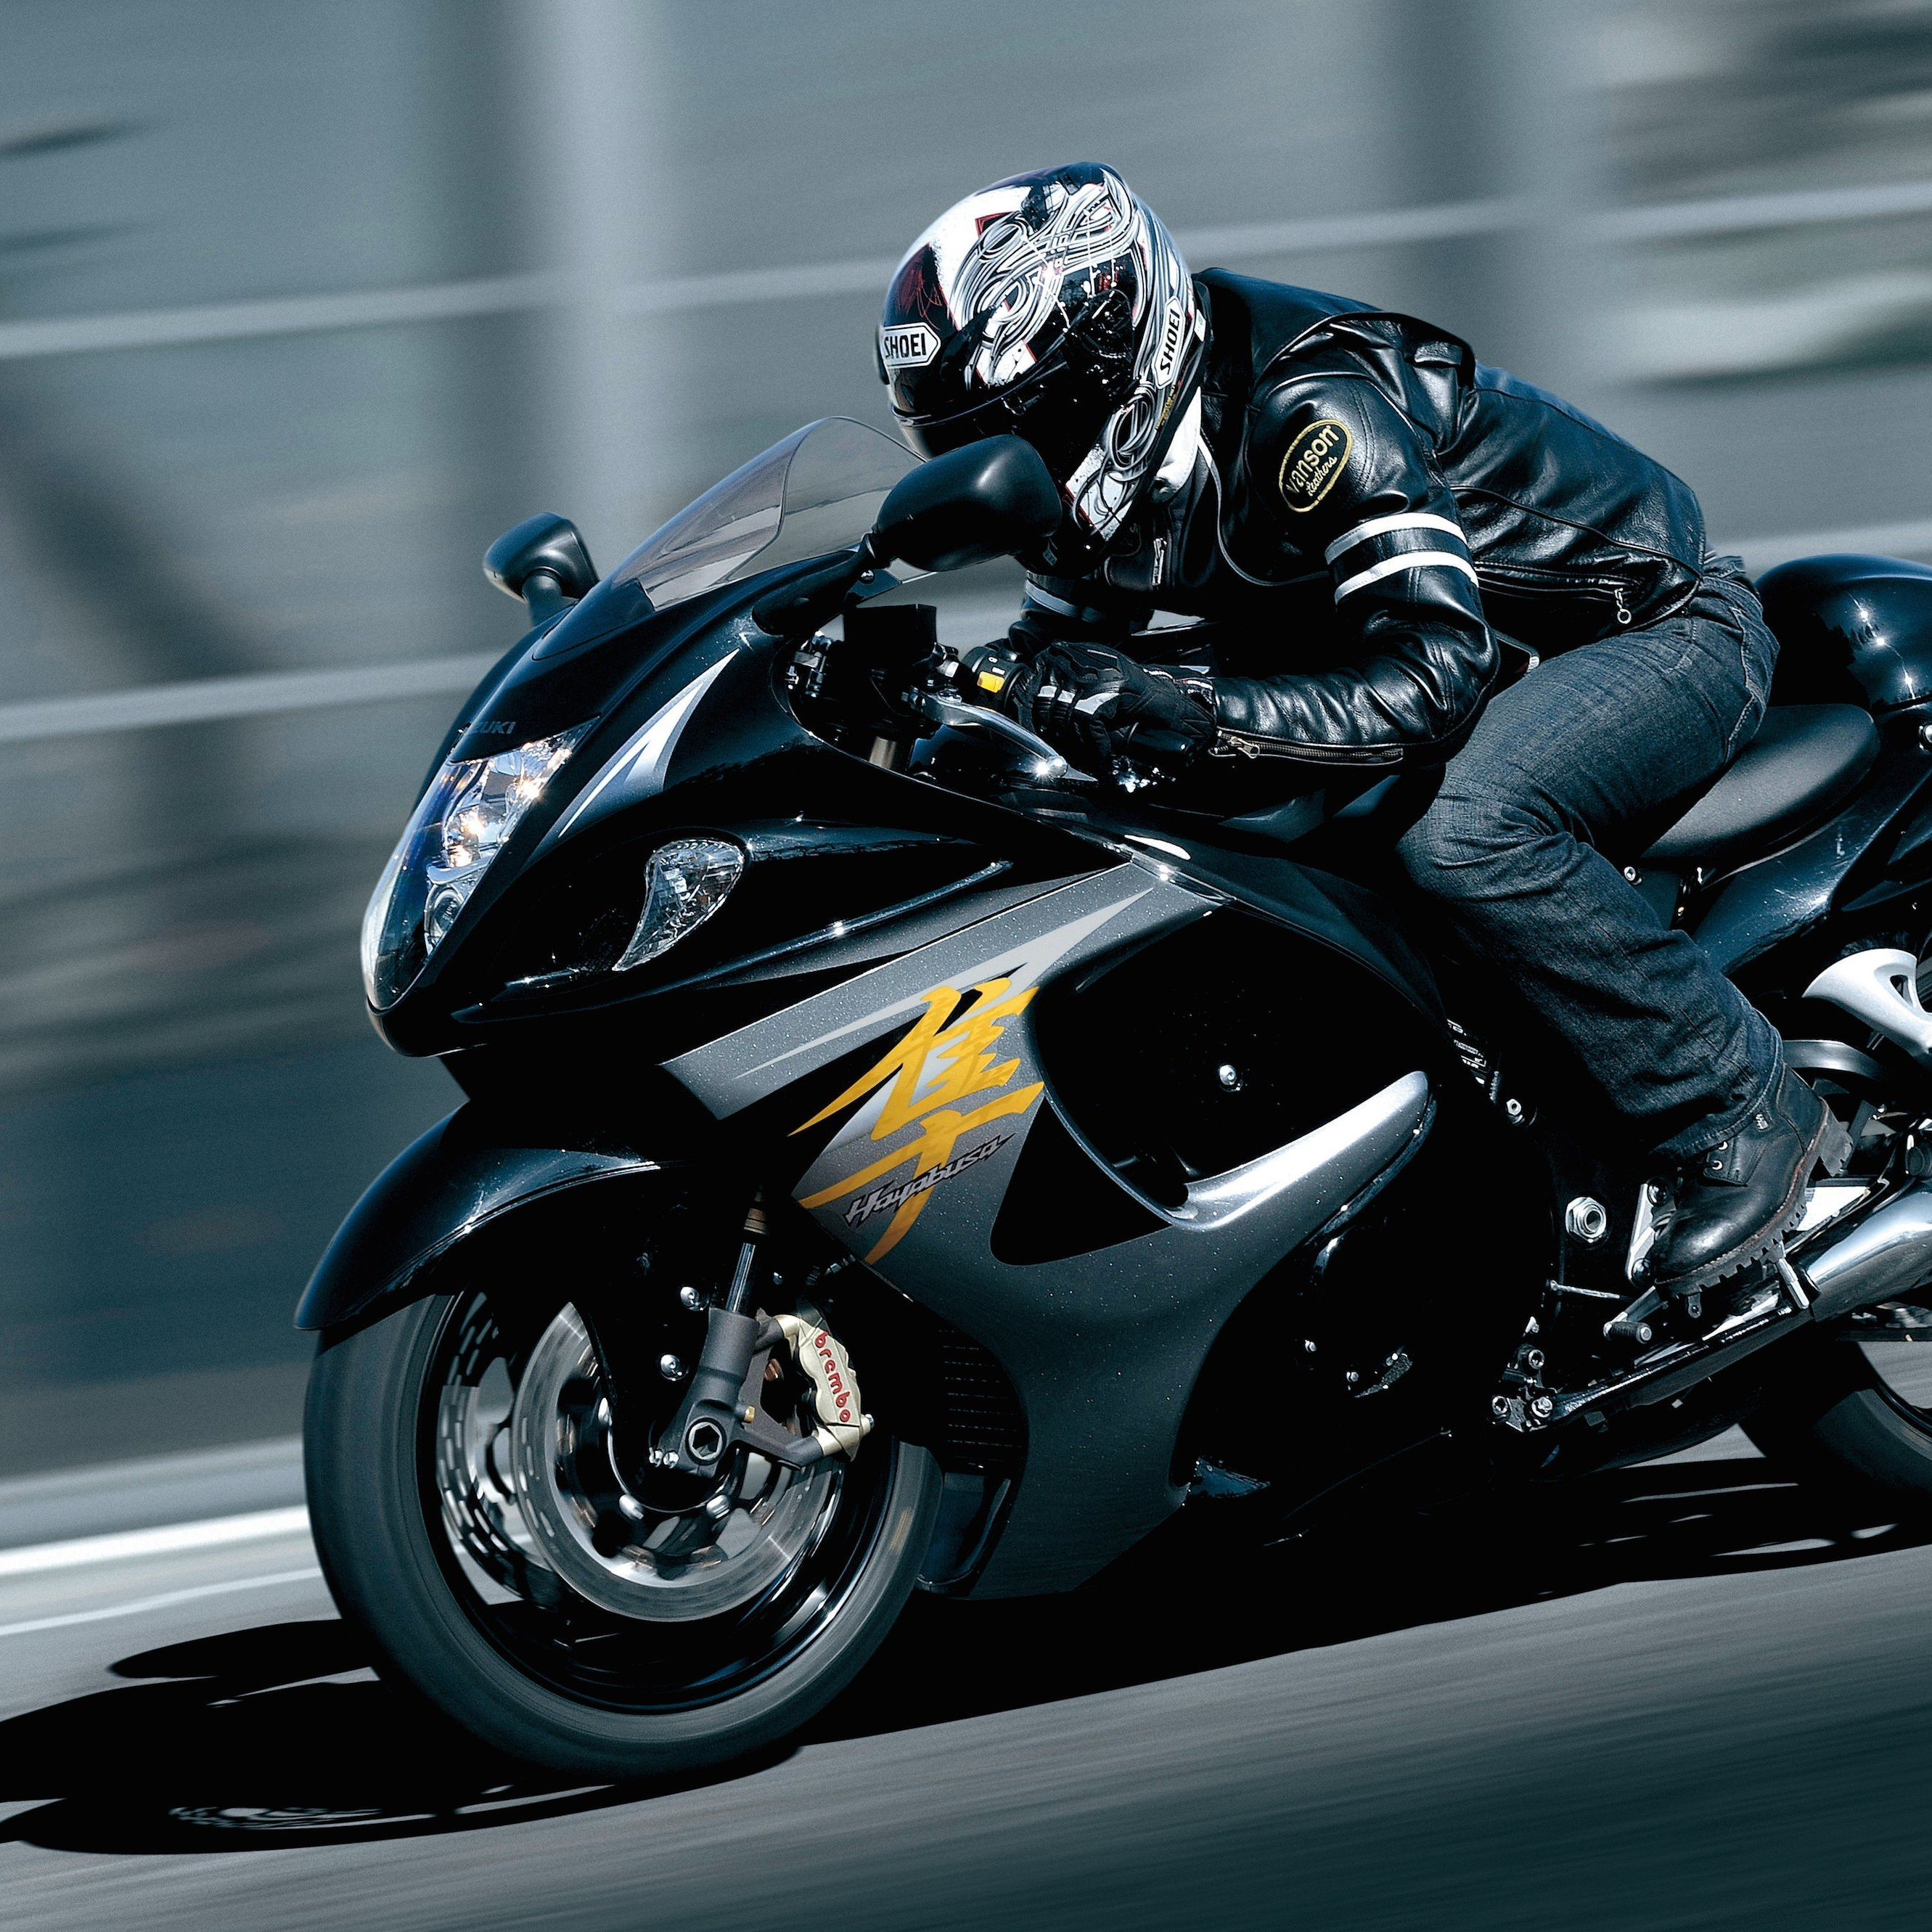 Suzuki Hayabusa GSX 1300R Wallpaper for Apple iPhone 6 Plus